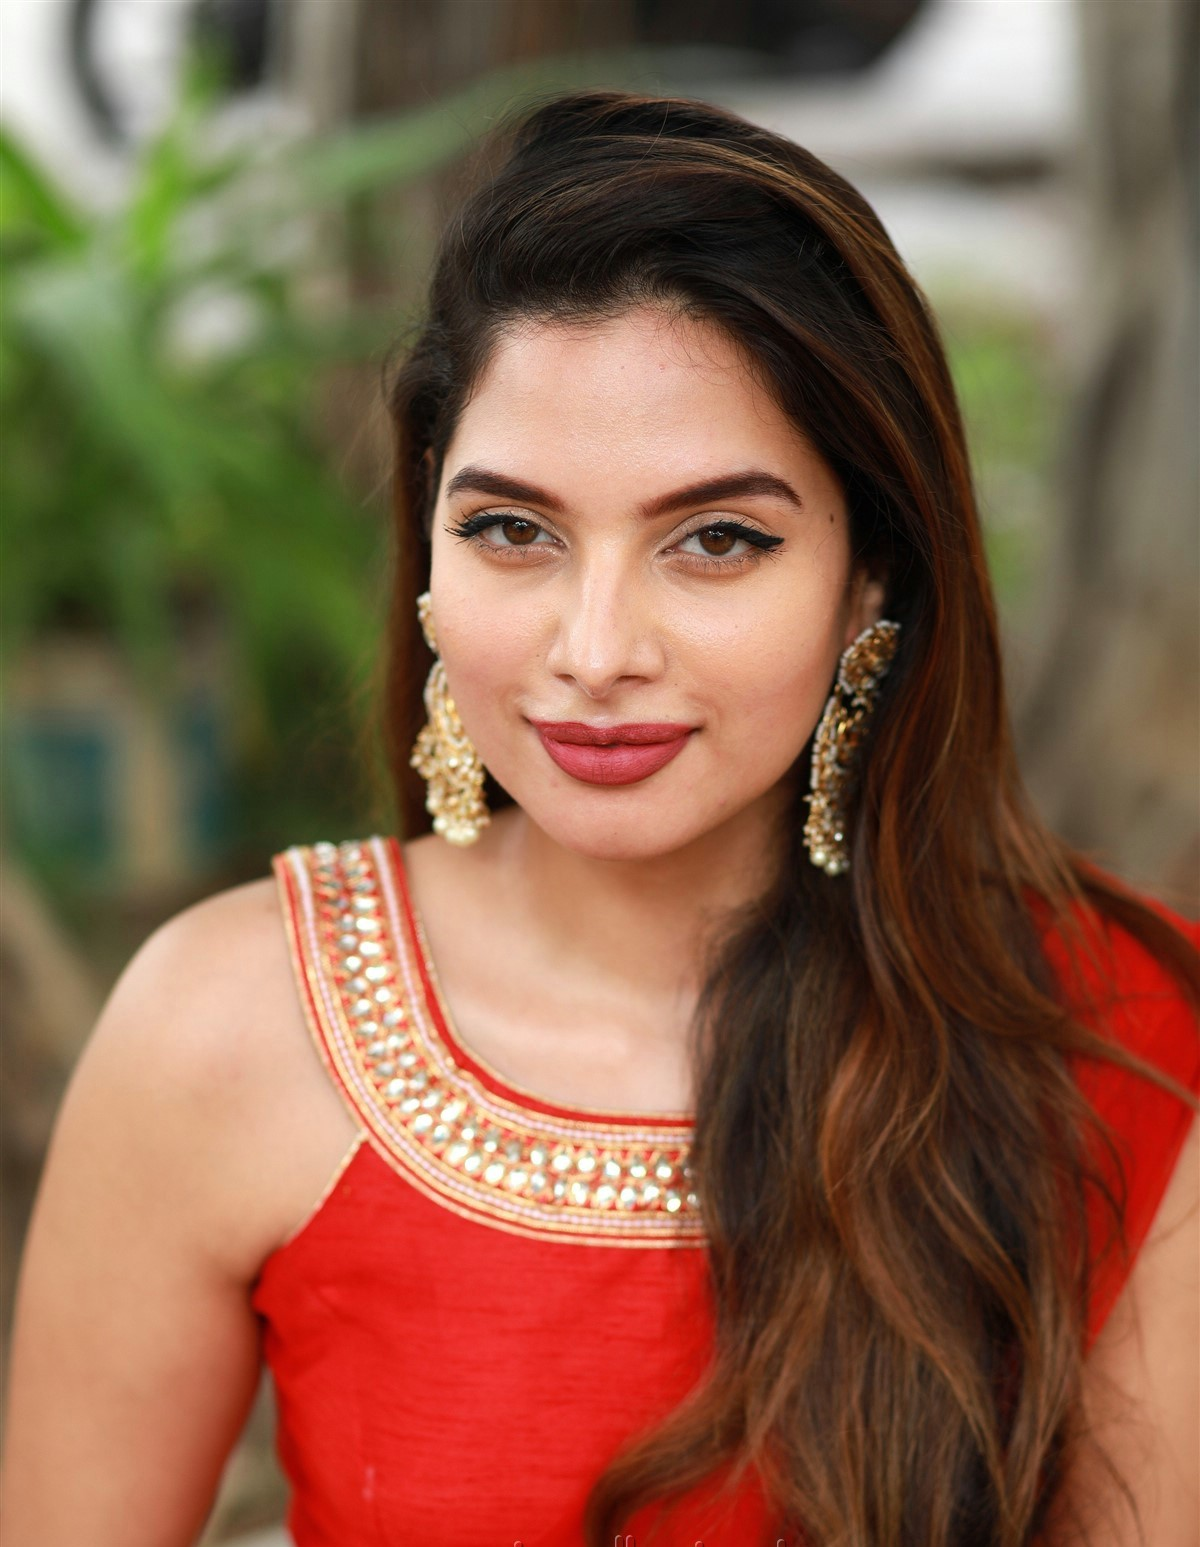 actress tanya hope red saree hot and sexy pose 2 Actress Tanya Hope Hot Red Dress